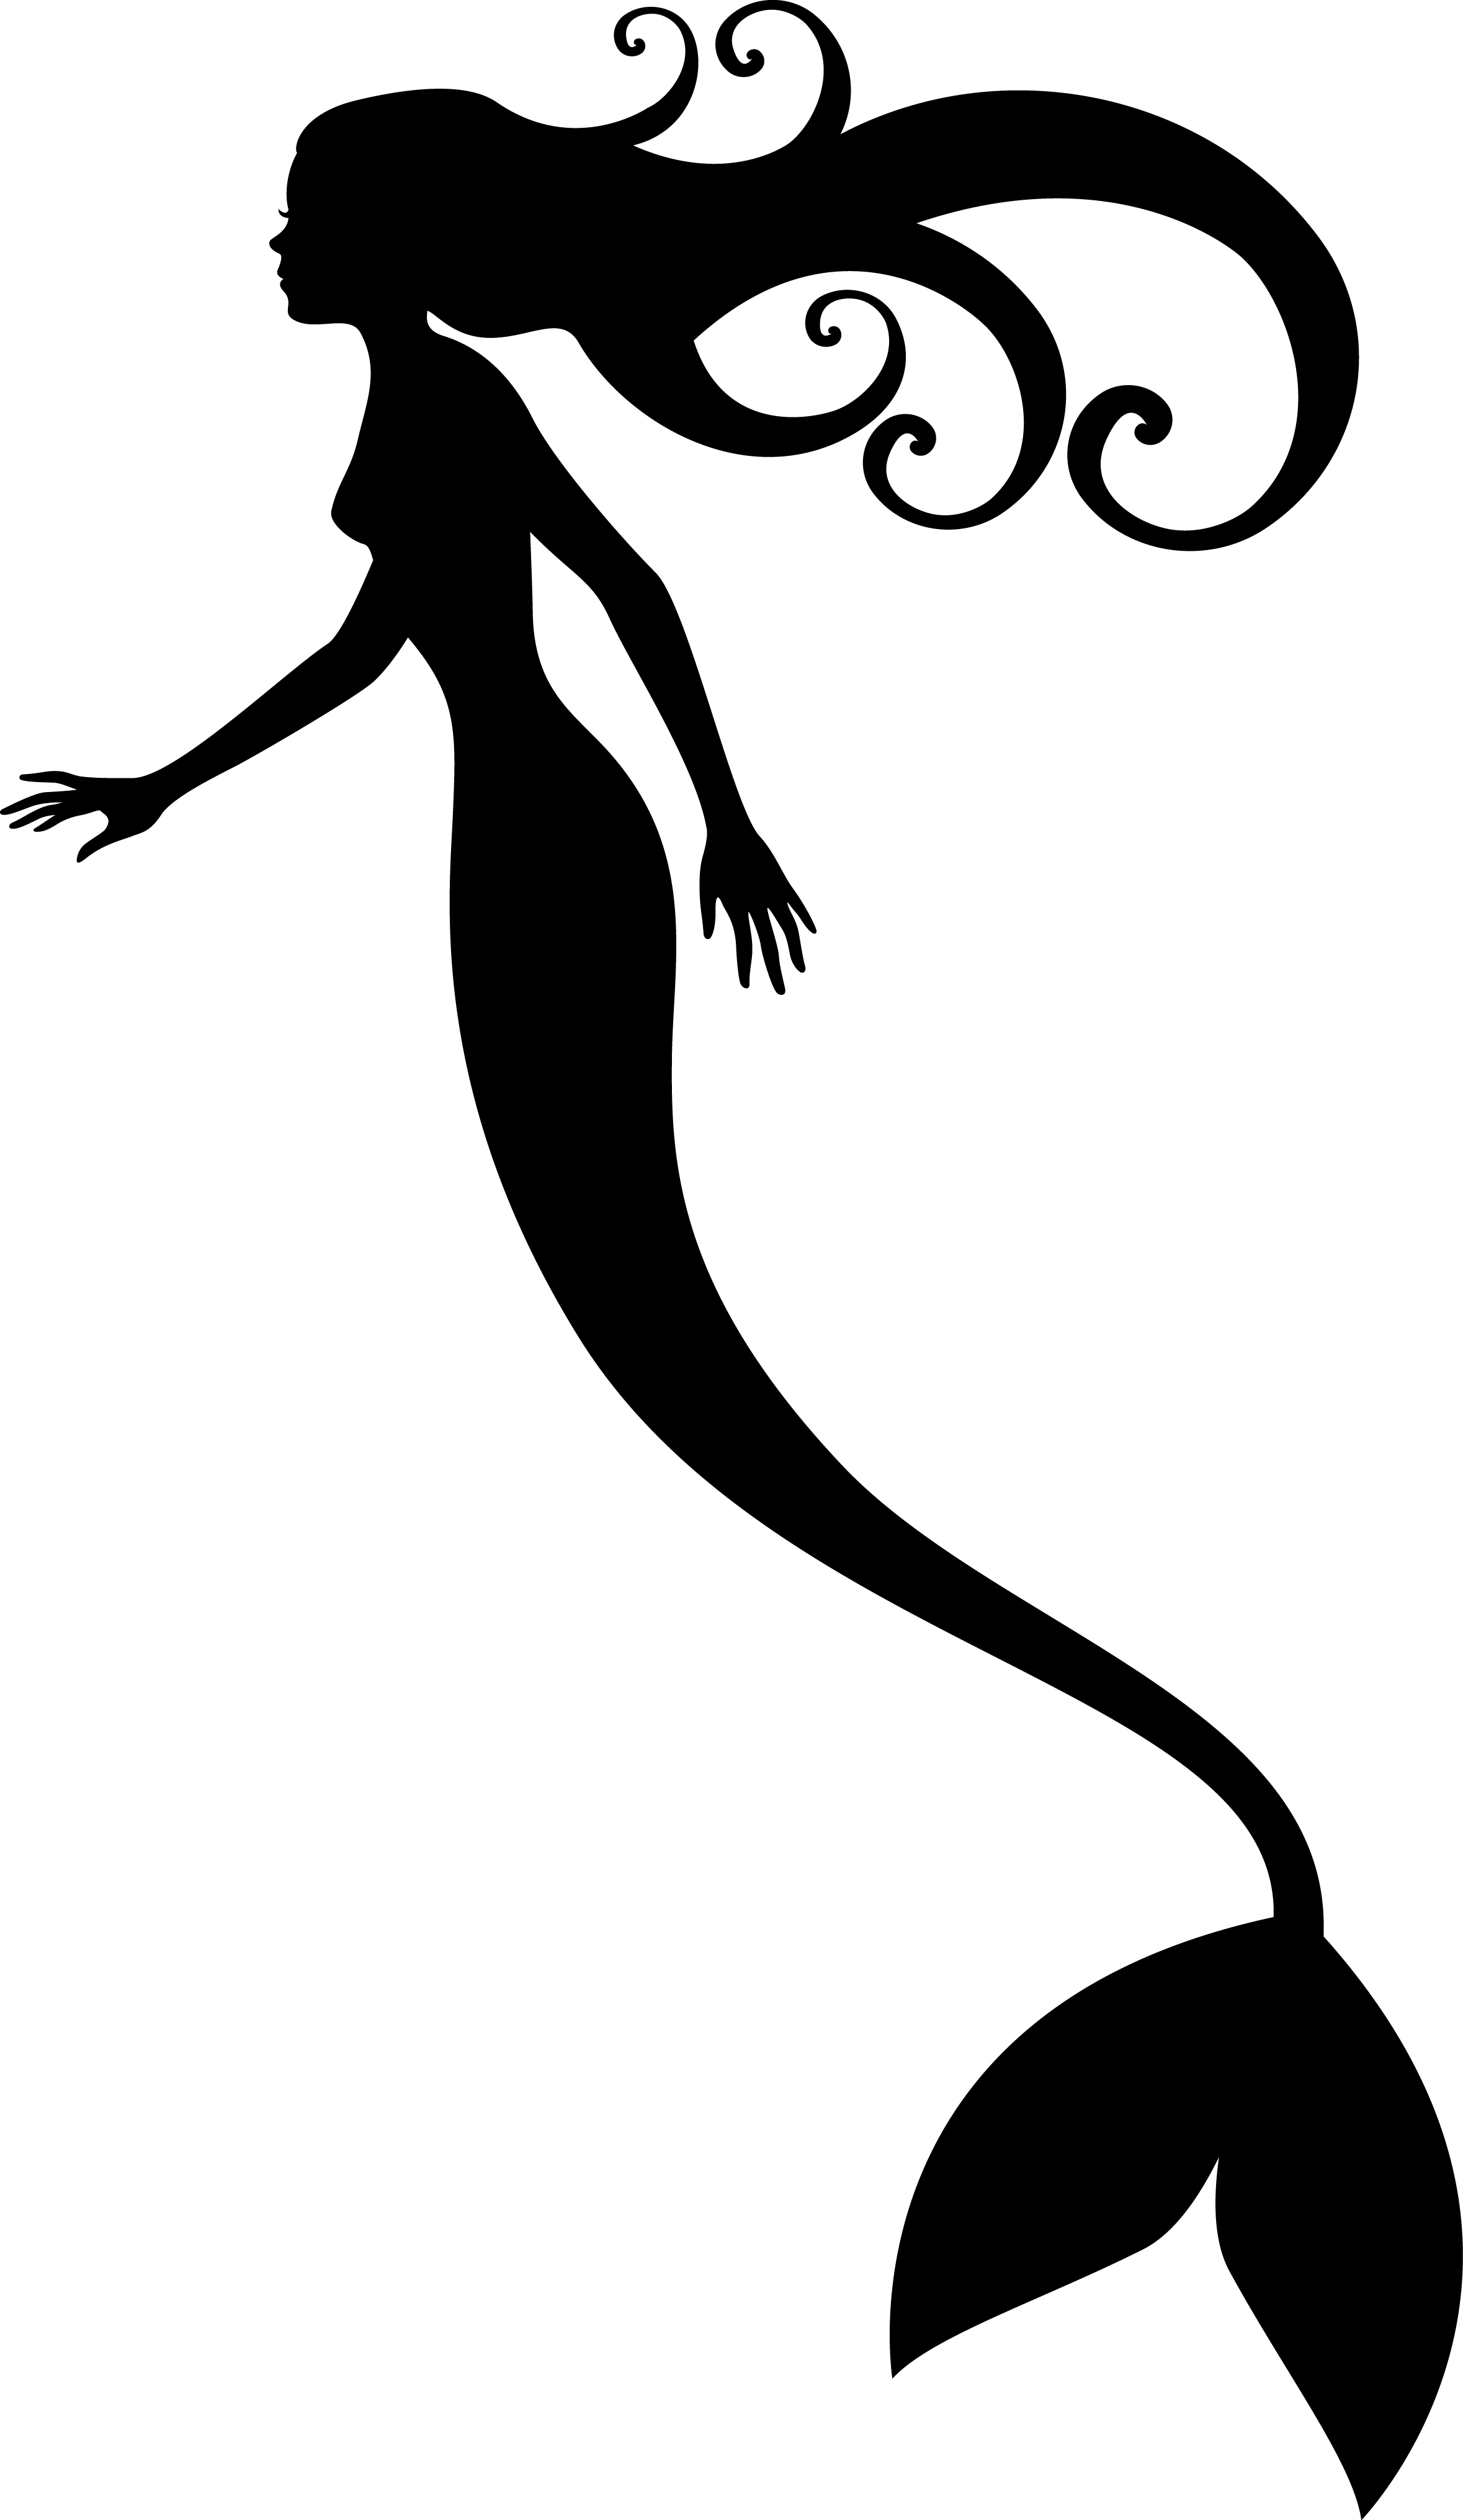 2358x4063 Mermaid Tail Silhouette Mermaidhires Free Images